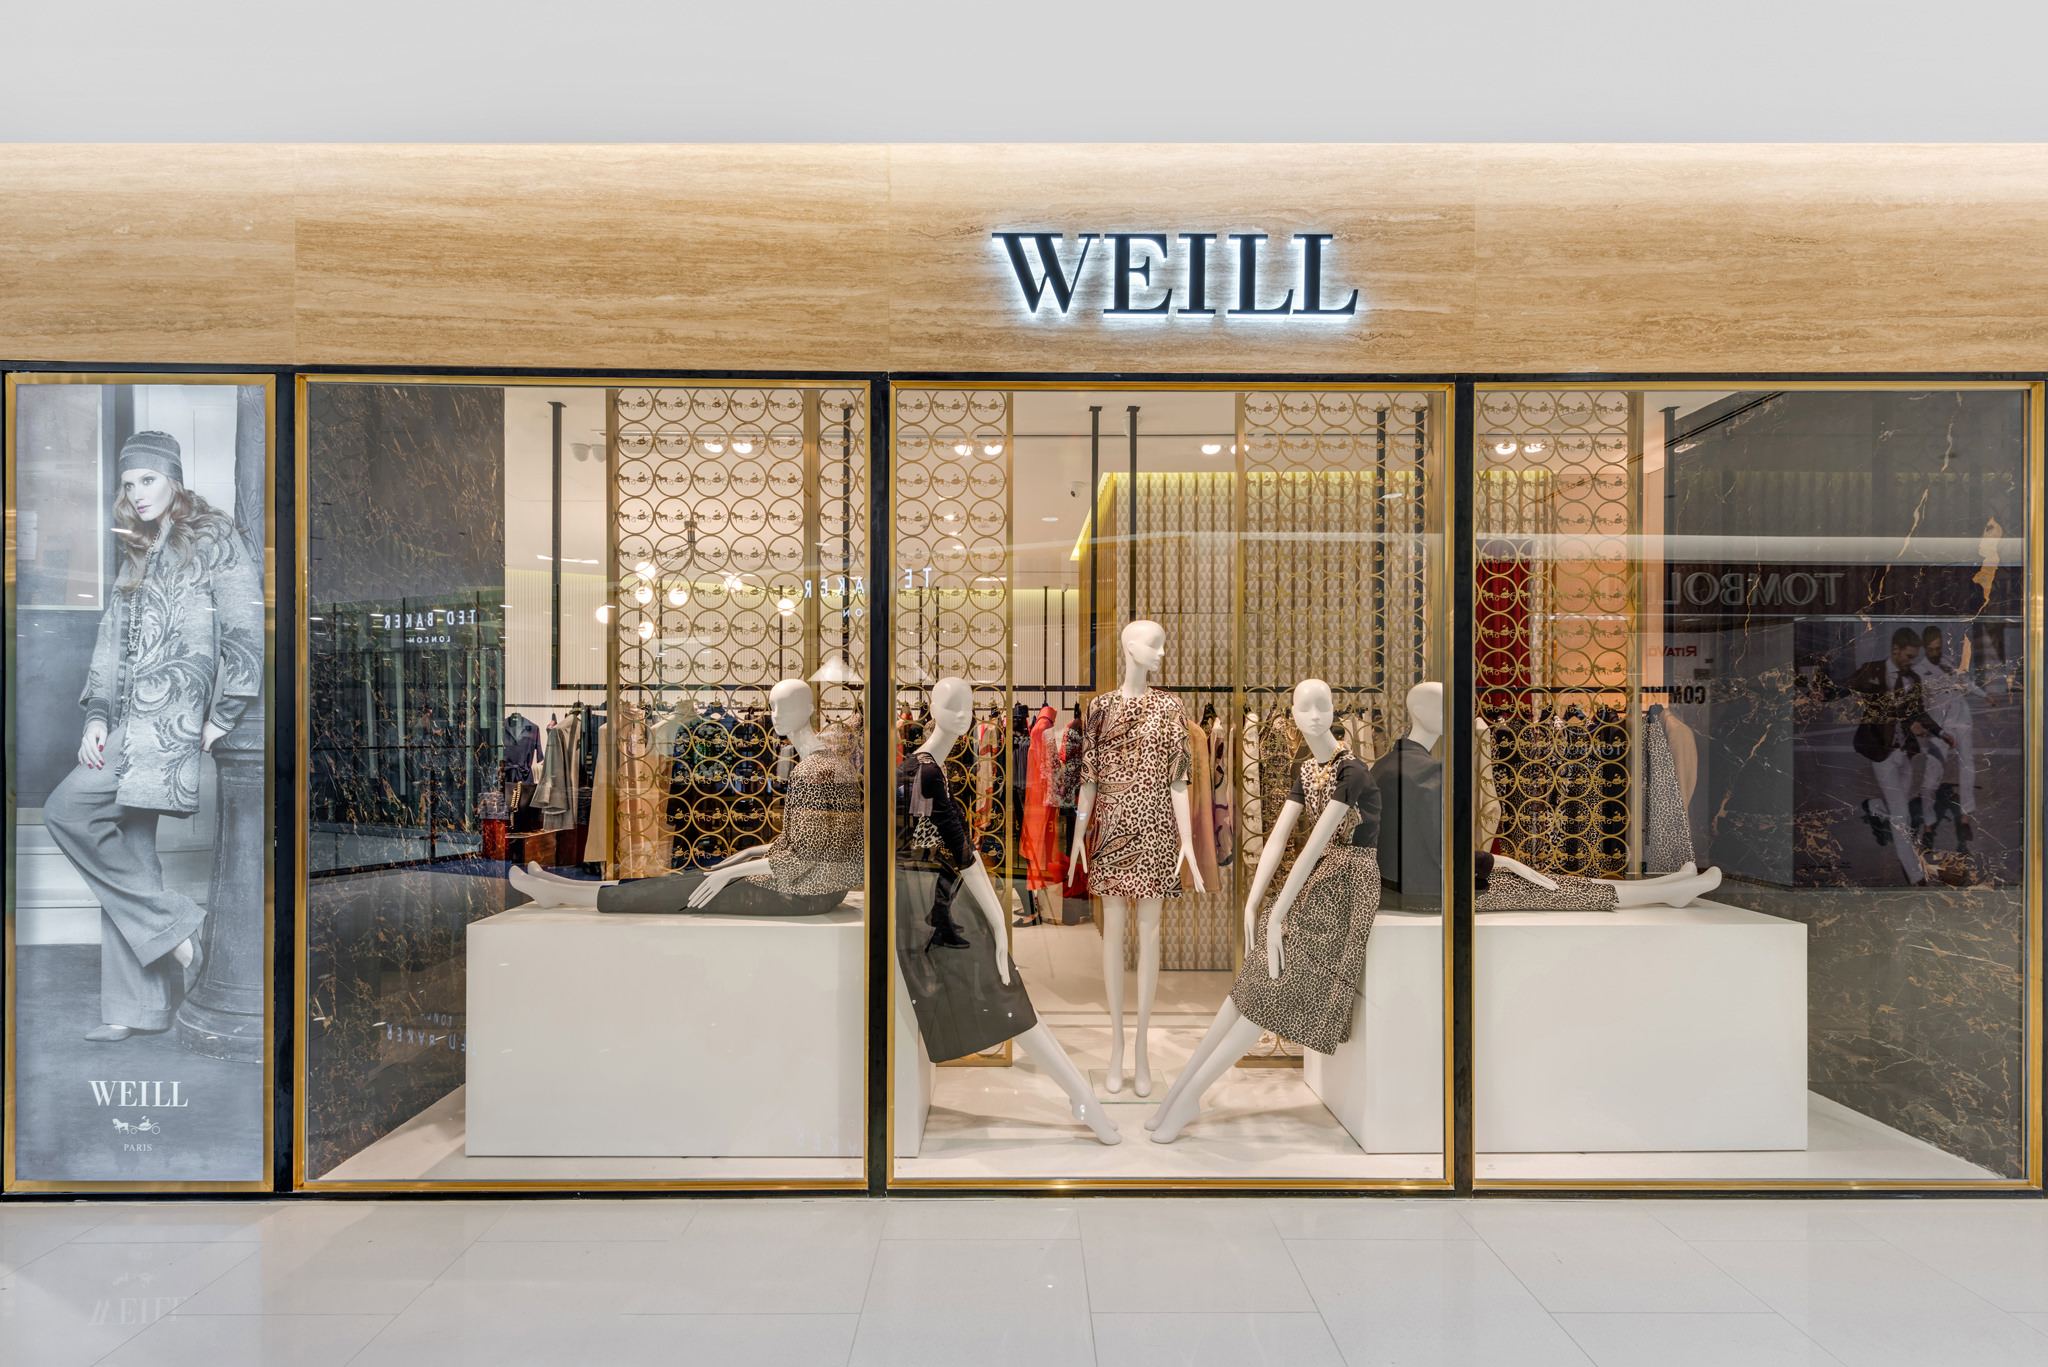 20160801 - Weill - HCM - Commercial - Interior - Store - Retouch 0002.jpg